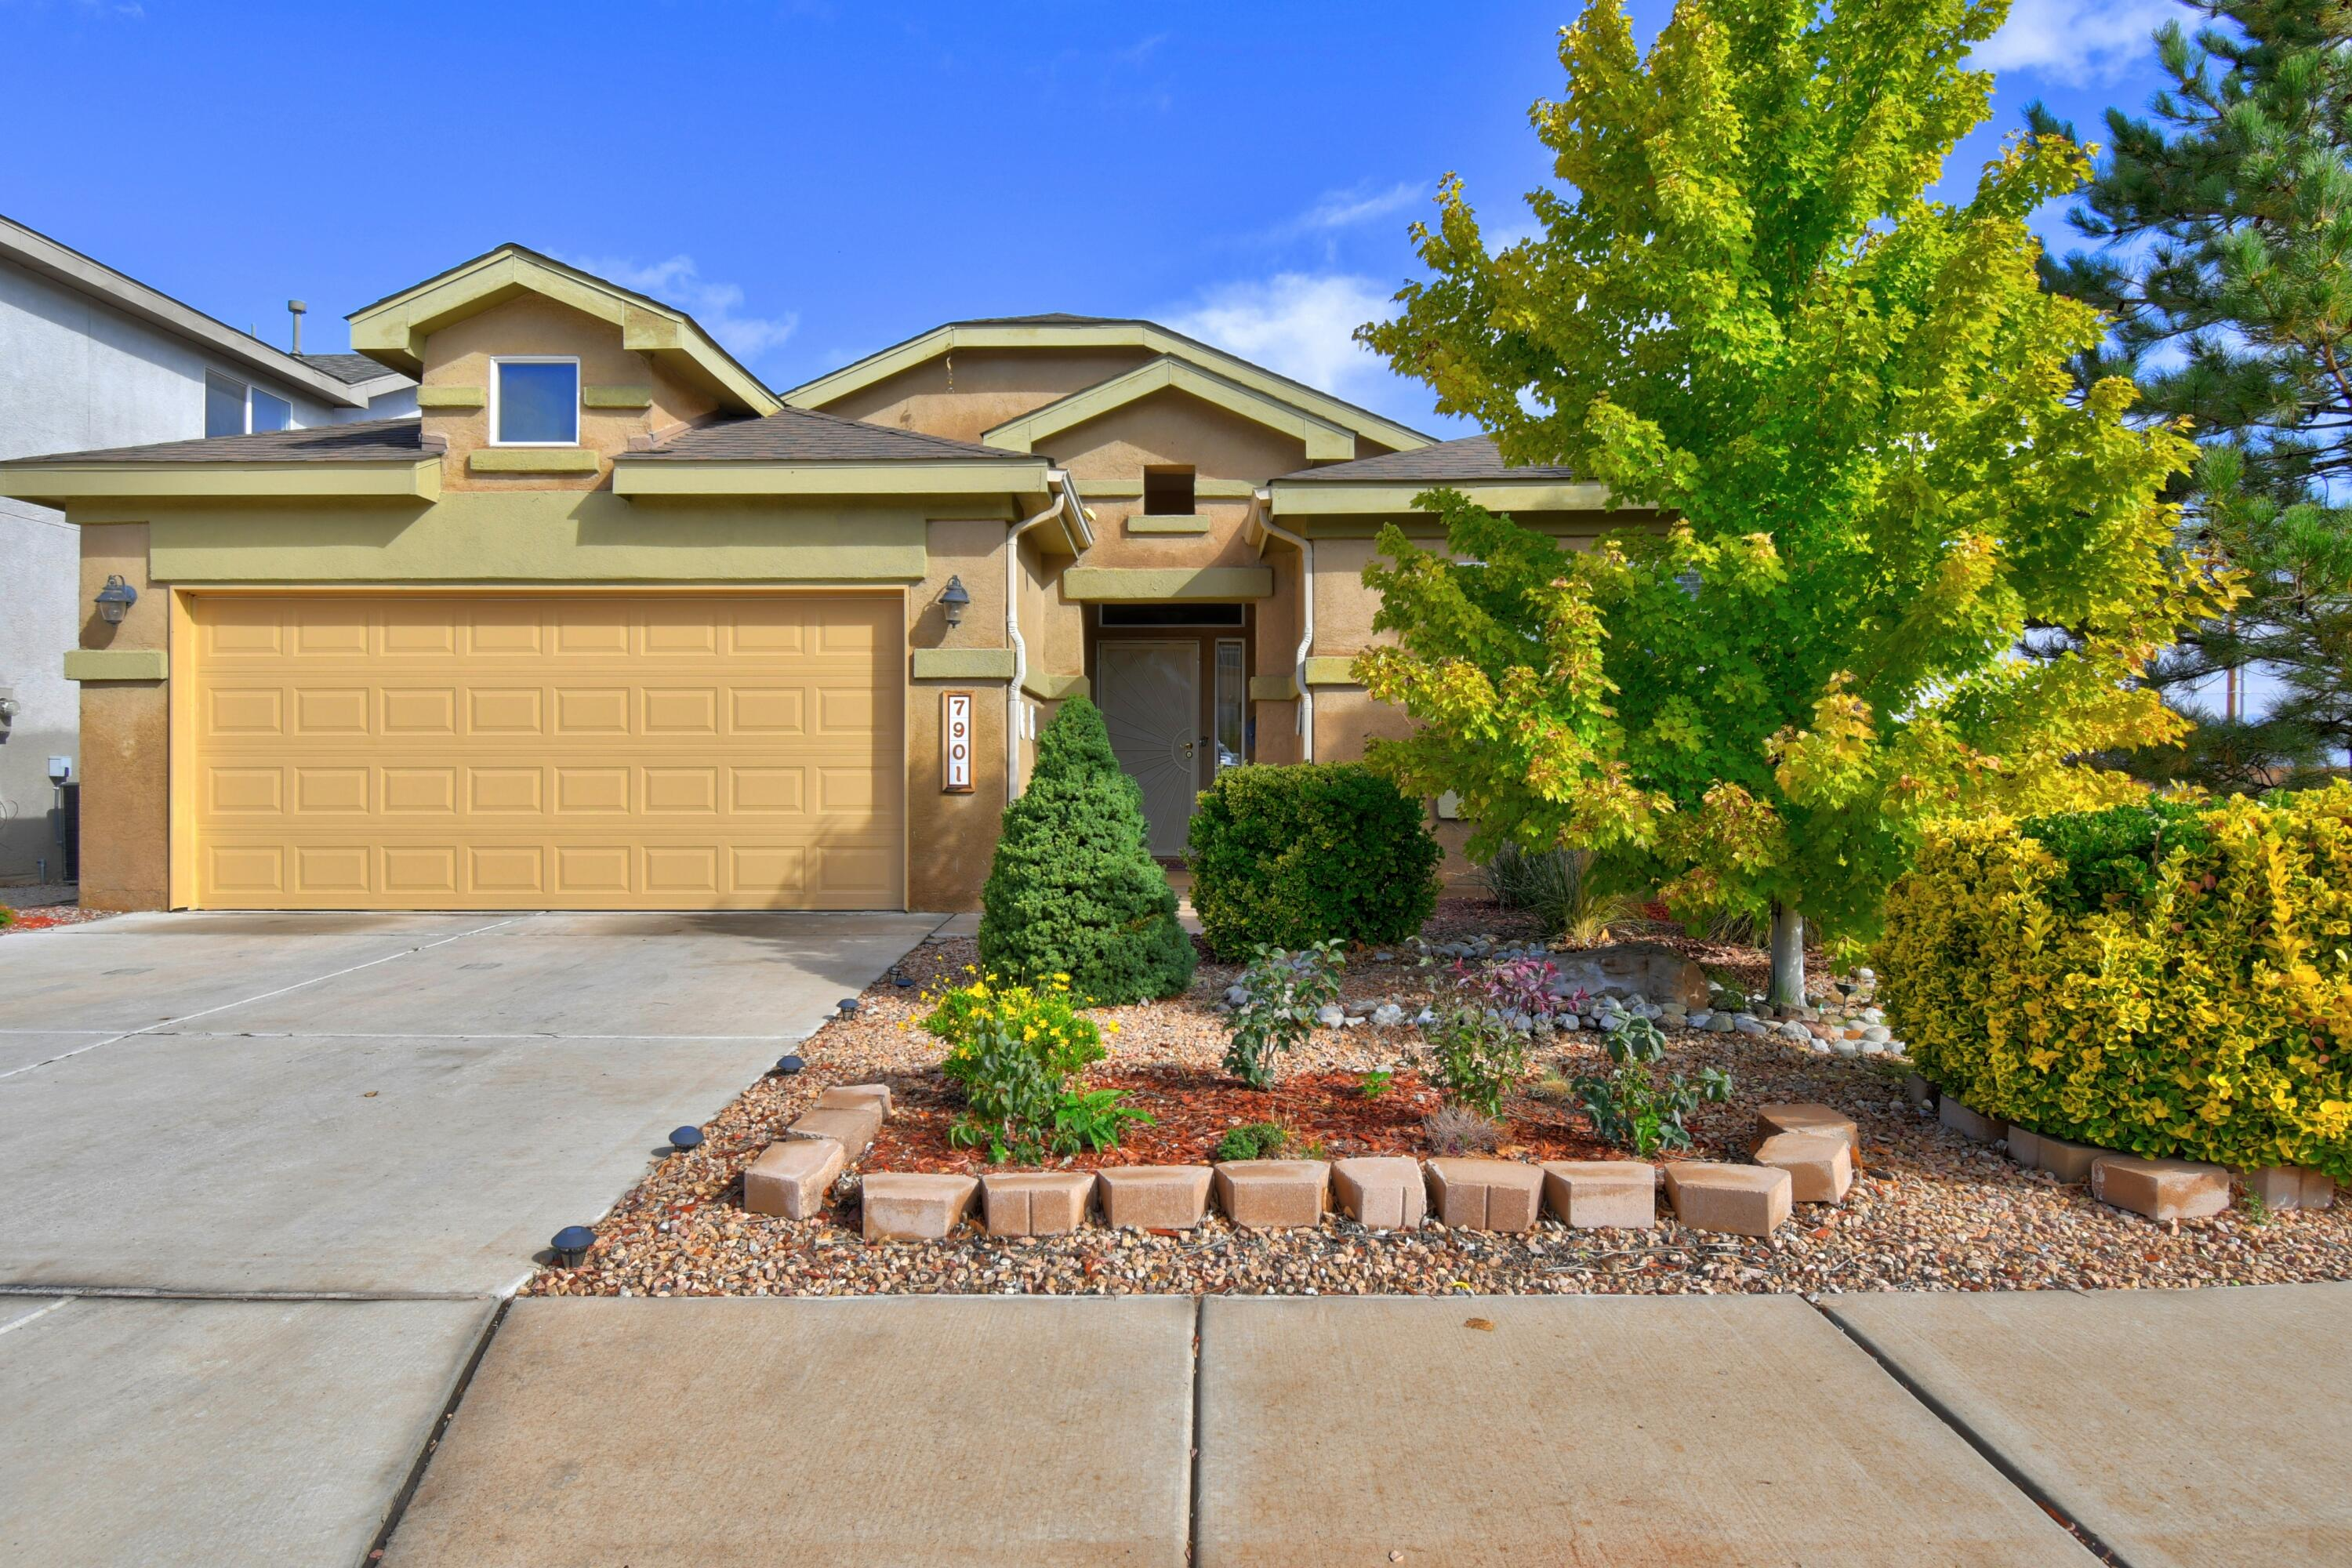 This Pulte single story 4-bedroom, 2-bath home is situated on a  premium corner lot in Ventana Ranch. Offers beautiful views from the manicured backyard that backs up to open space.  Spacious foyer welcomes you as you enter this well maintained home.  Has a comfortable and flowing floor plan, split bedrooms for privacy. Kitchen has a large breakfast bar that is open to the Great/Dining room area. Spacious master suite with jetted tub and separate shower, huge walk-in closet & water closet. Fully Xeroscaped front and back yards with drip system. All appliances stay along with washer and dryer. Must see...